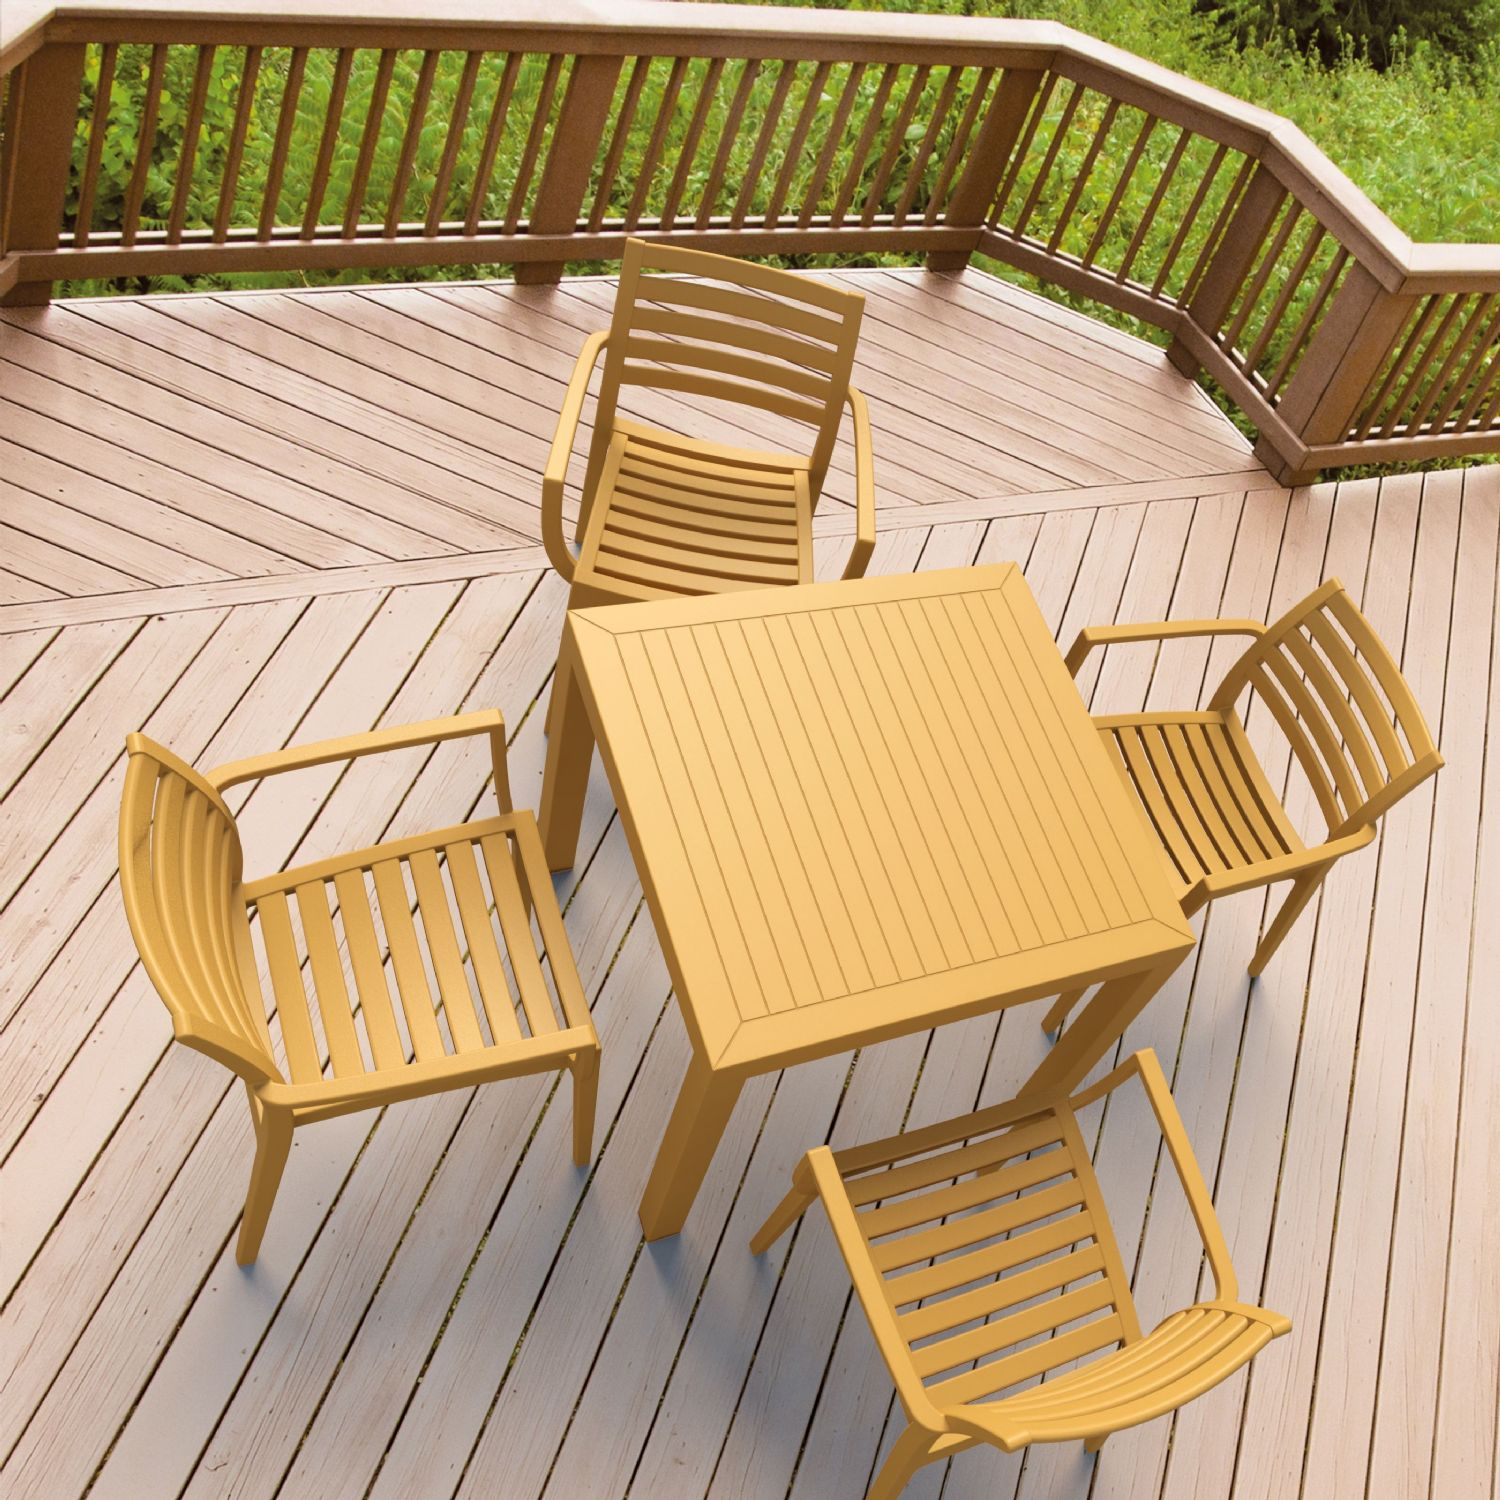 Artemis Resin Square Outdoor Dining Set 5 Piece with Arm Chairs Brown ISP1642S-BRW - 5